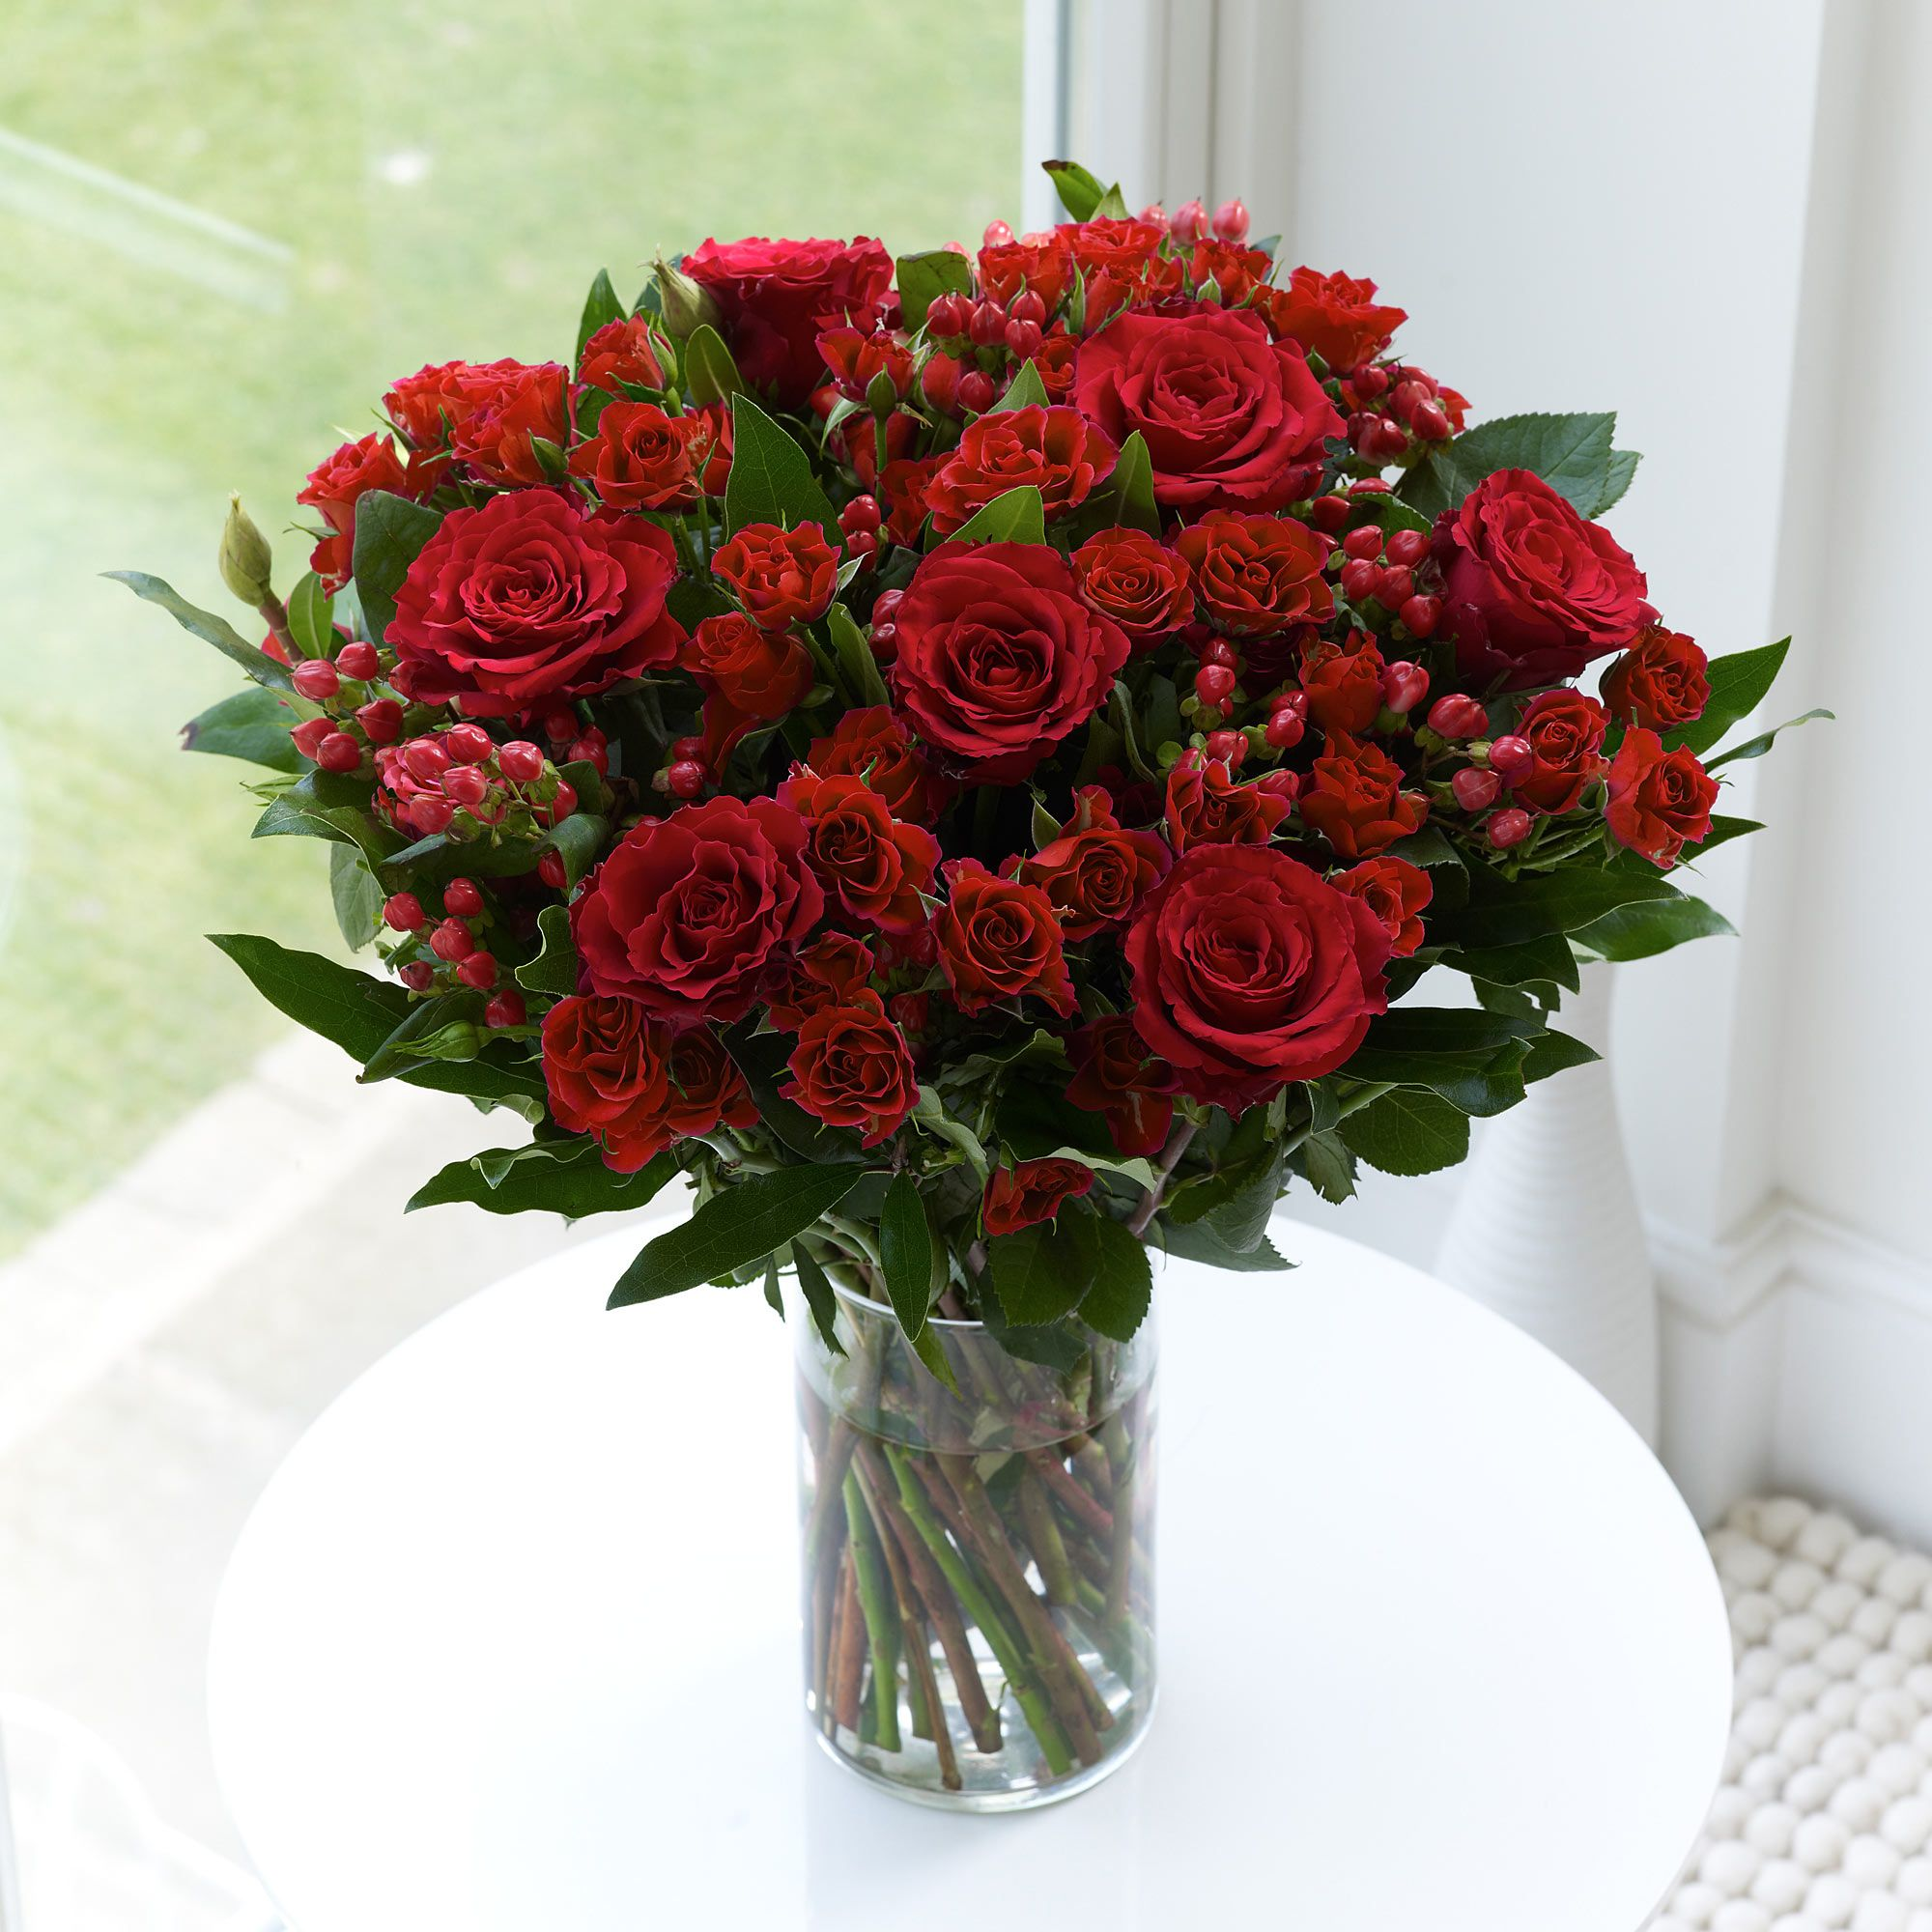 Rose Flower Wedding Table: A Beautiful Red Rose Display For Your Wedding Table